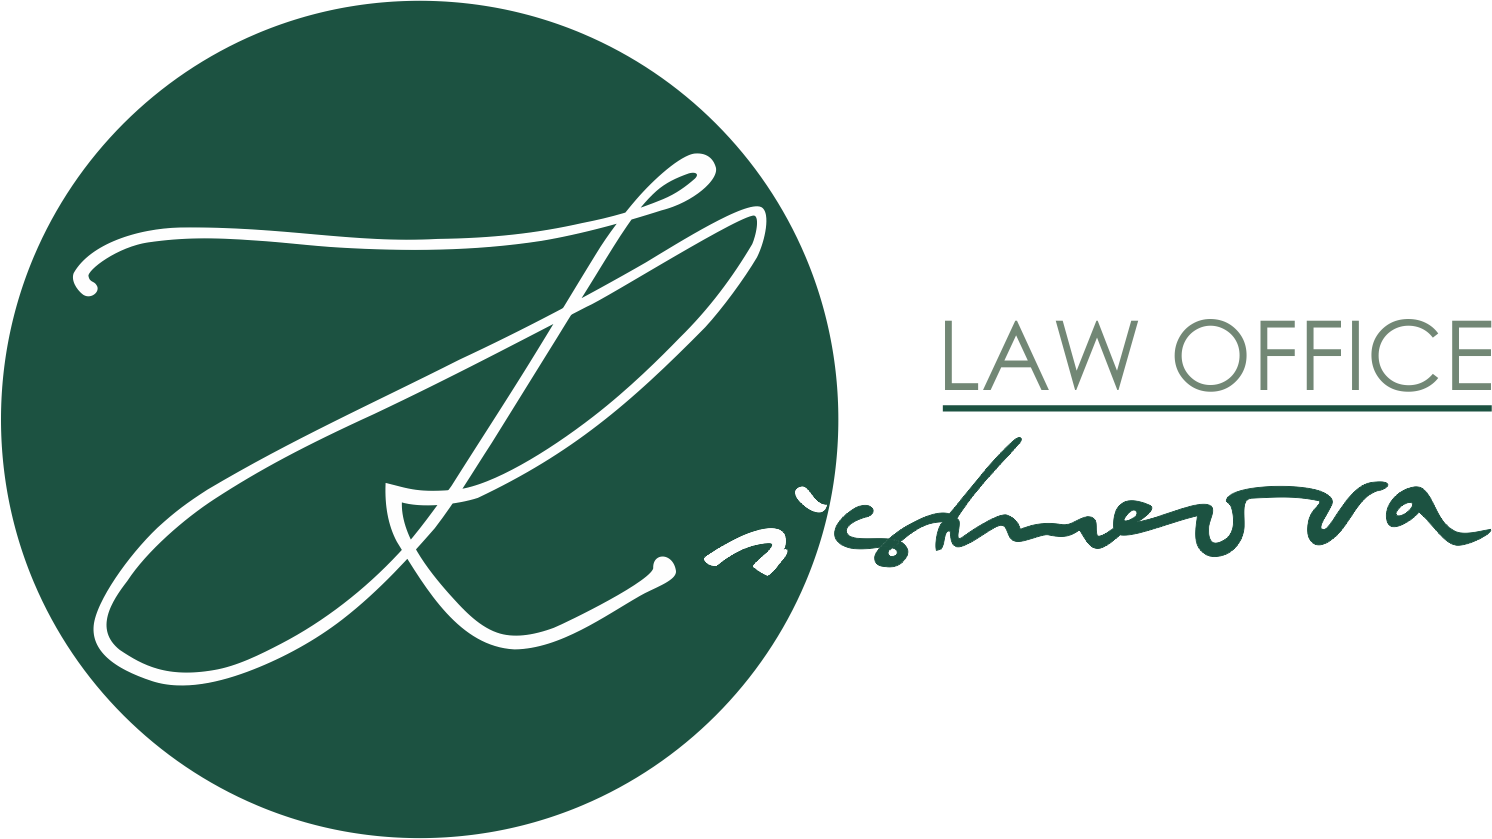 Kishkova Law Office